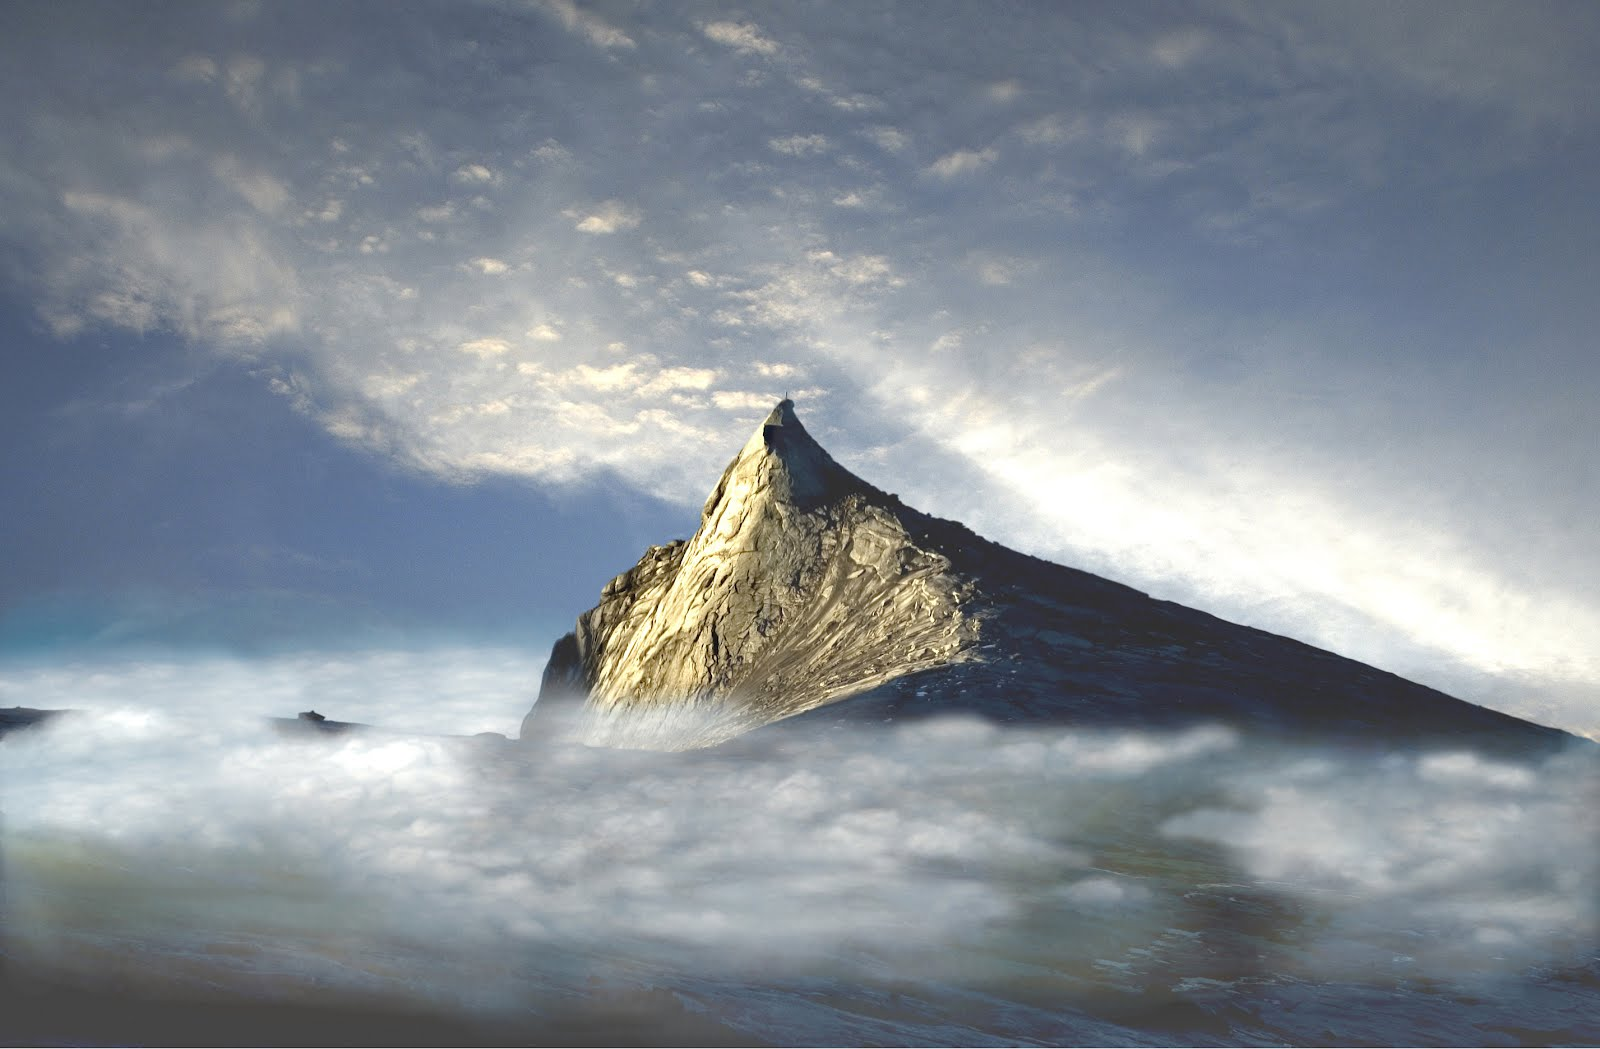 Mount Kinabalu is a mountain located at the West Coast